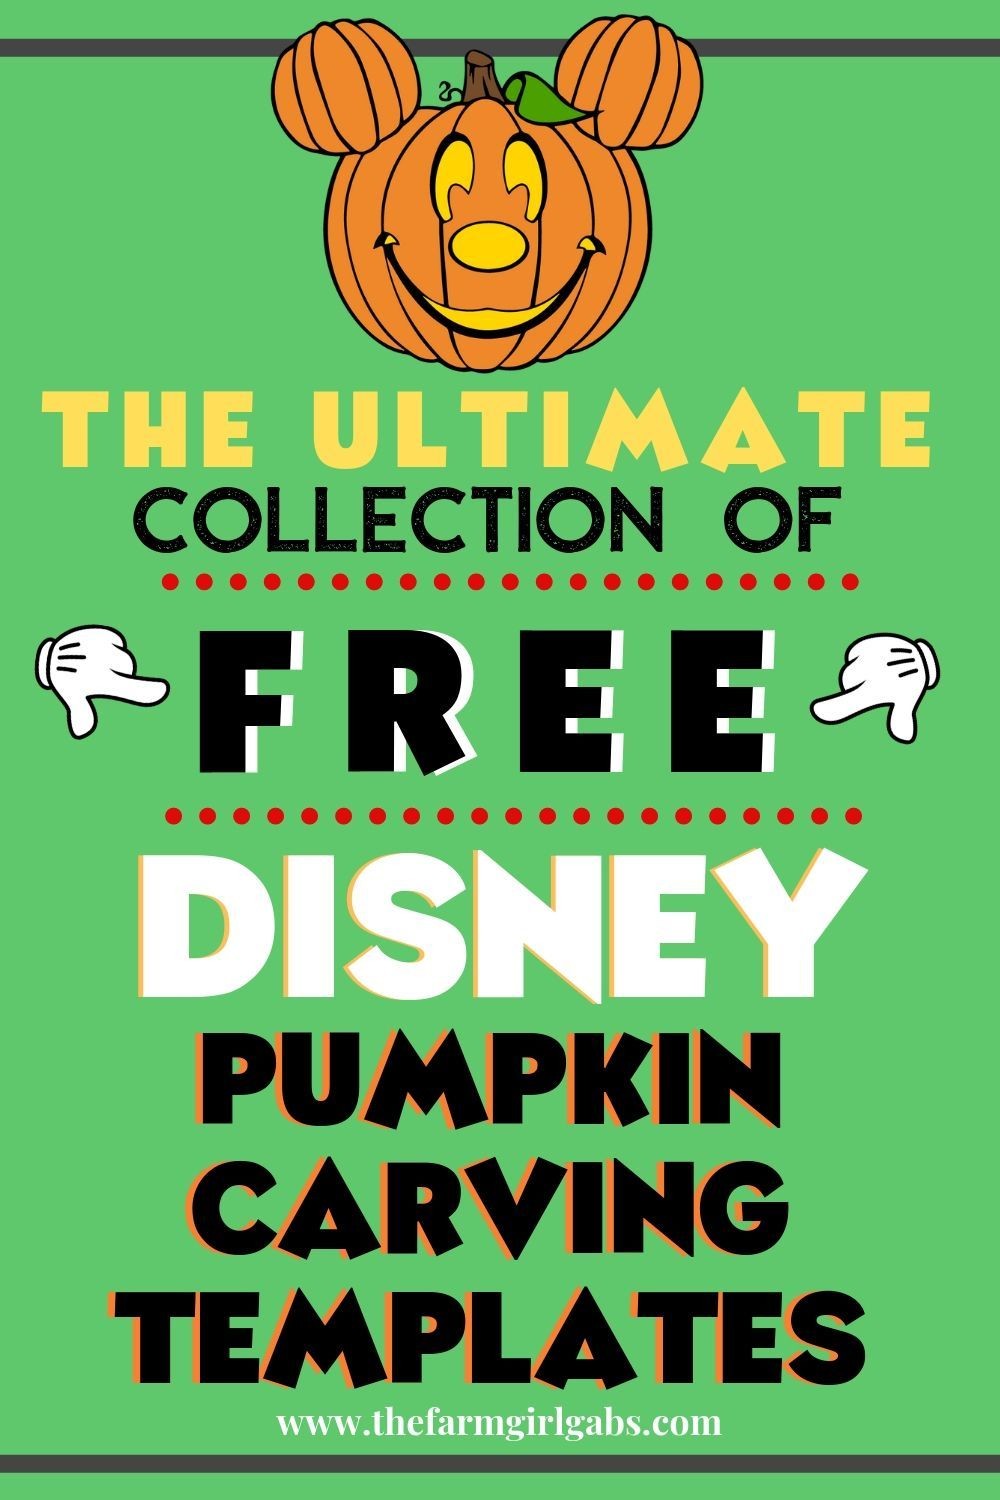 The Ultimate Collection of FREE Disney Pumpkin Carving Templates